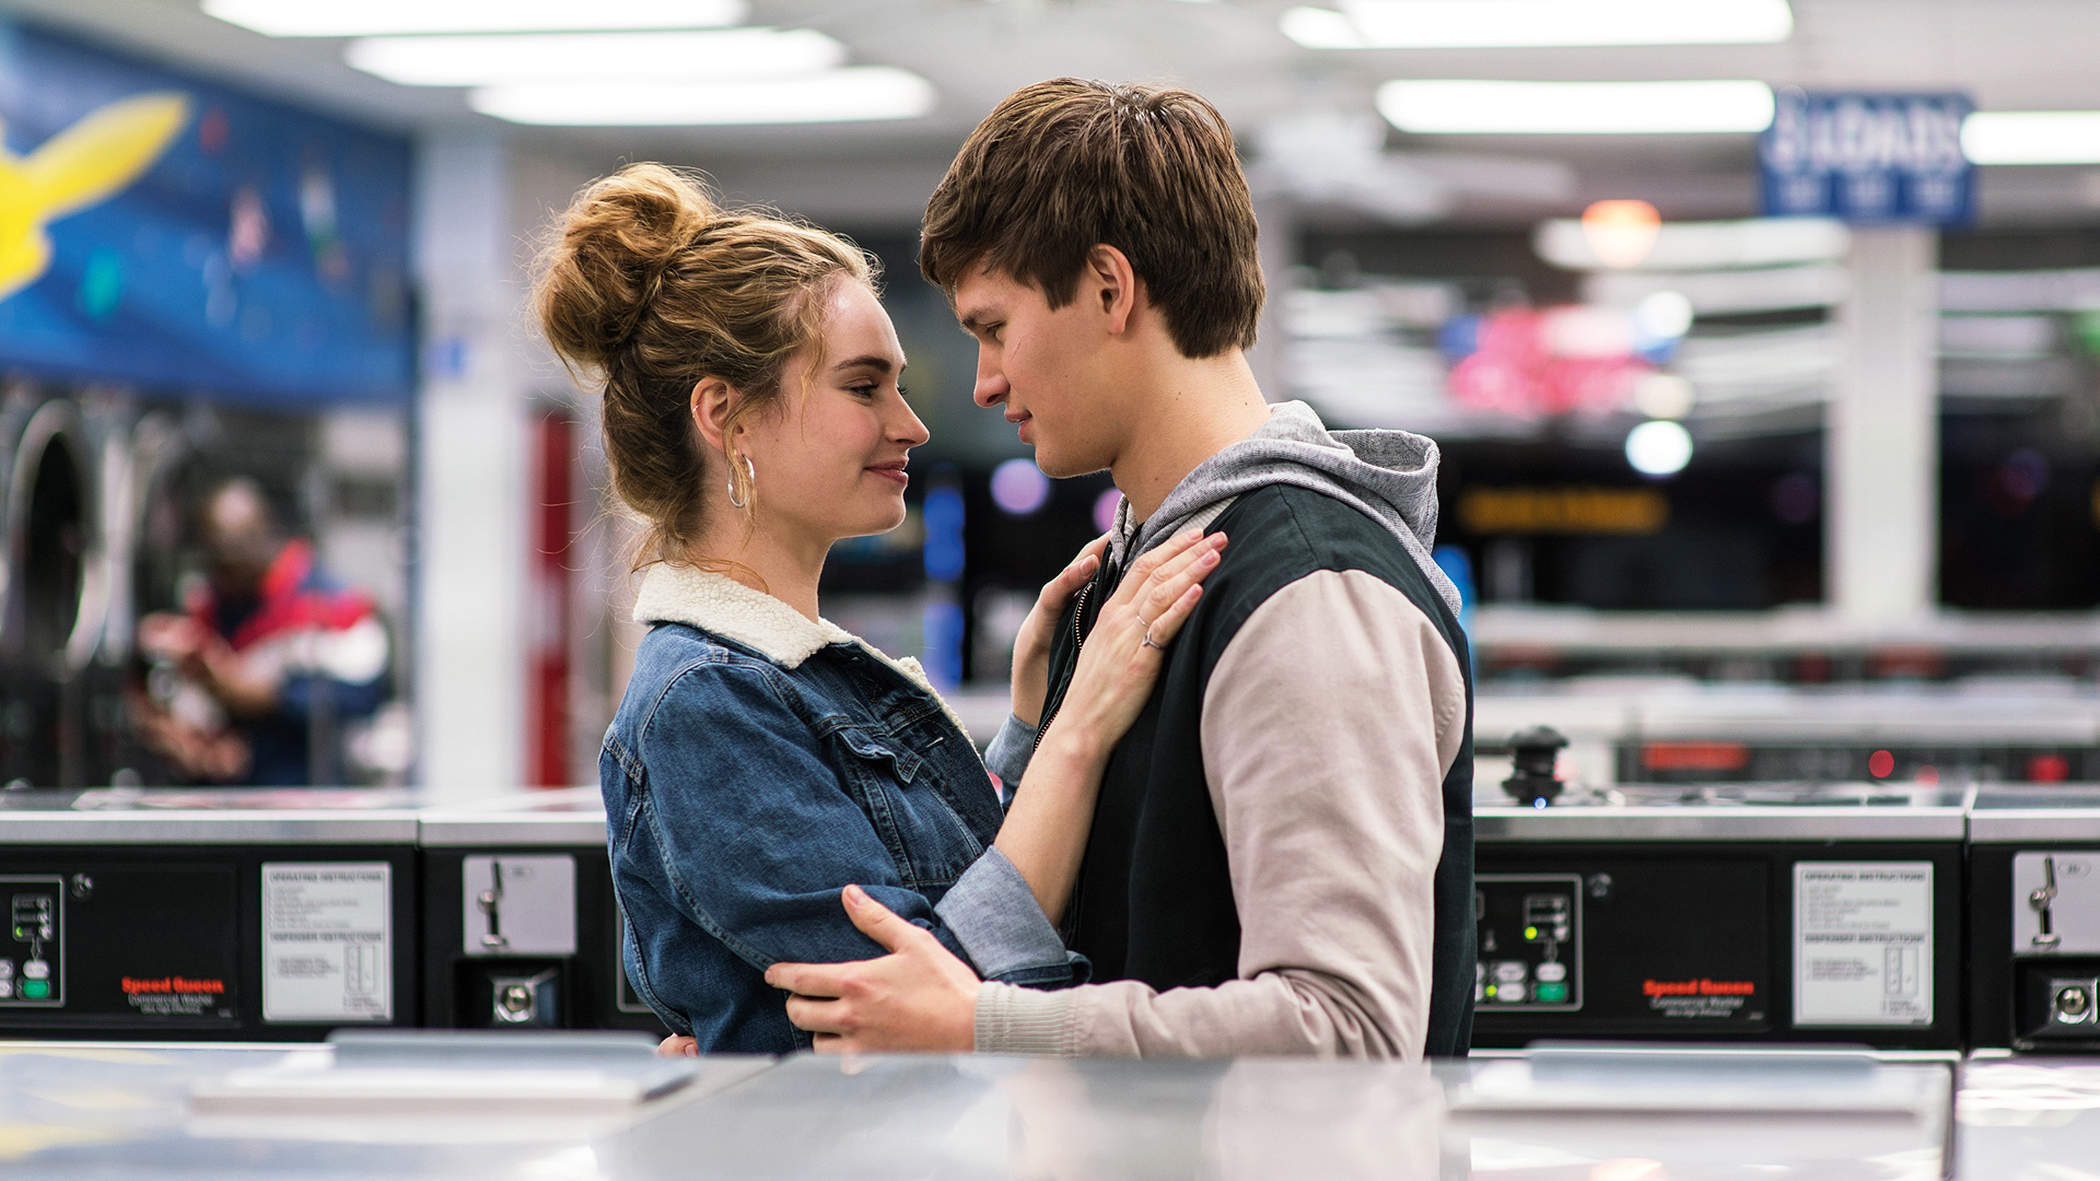 Baby Driver is a hundred-miles-an-hour car chase thriller that's cut like a musical